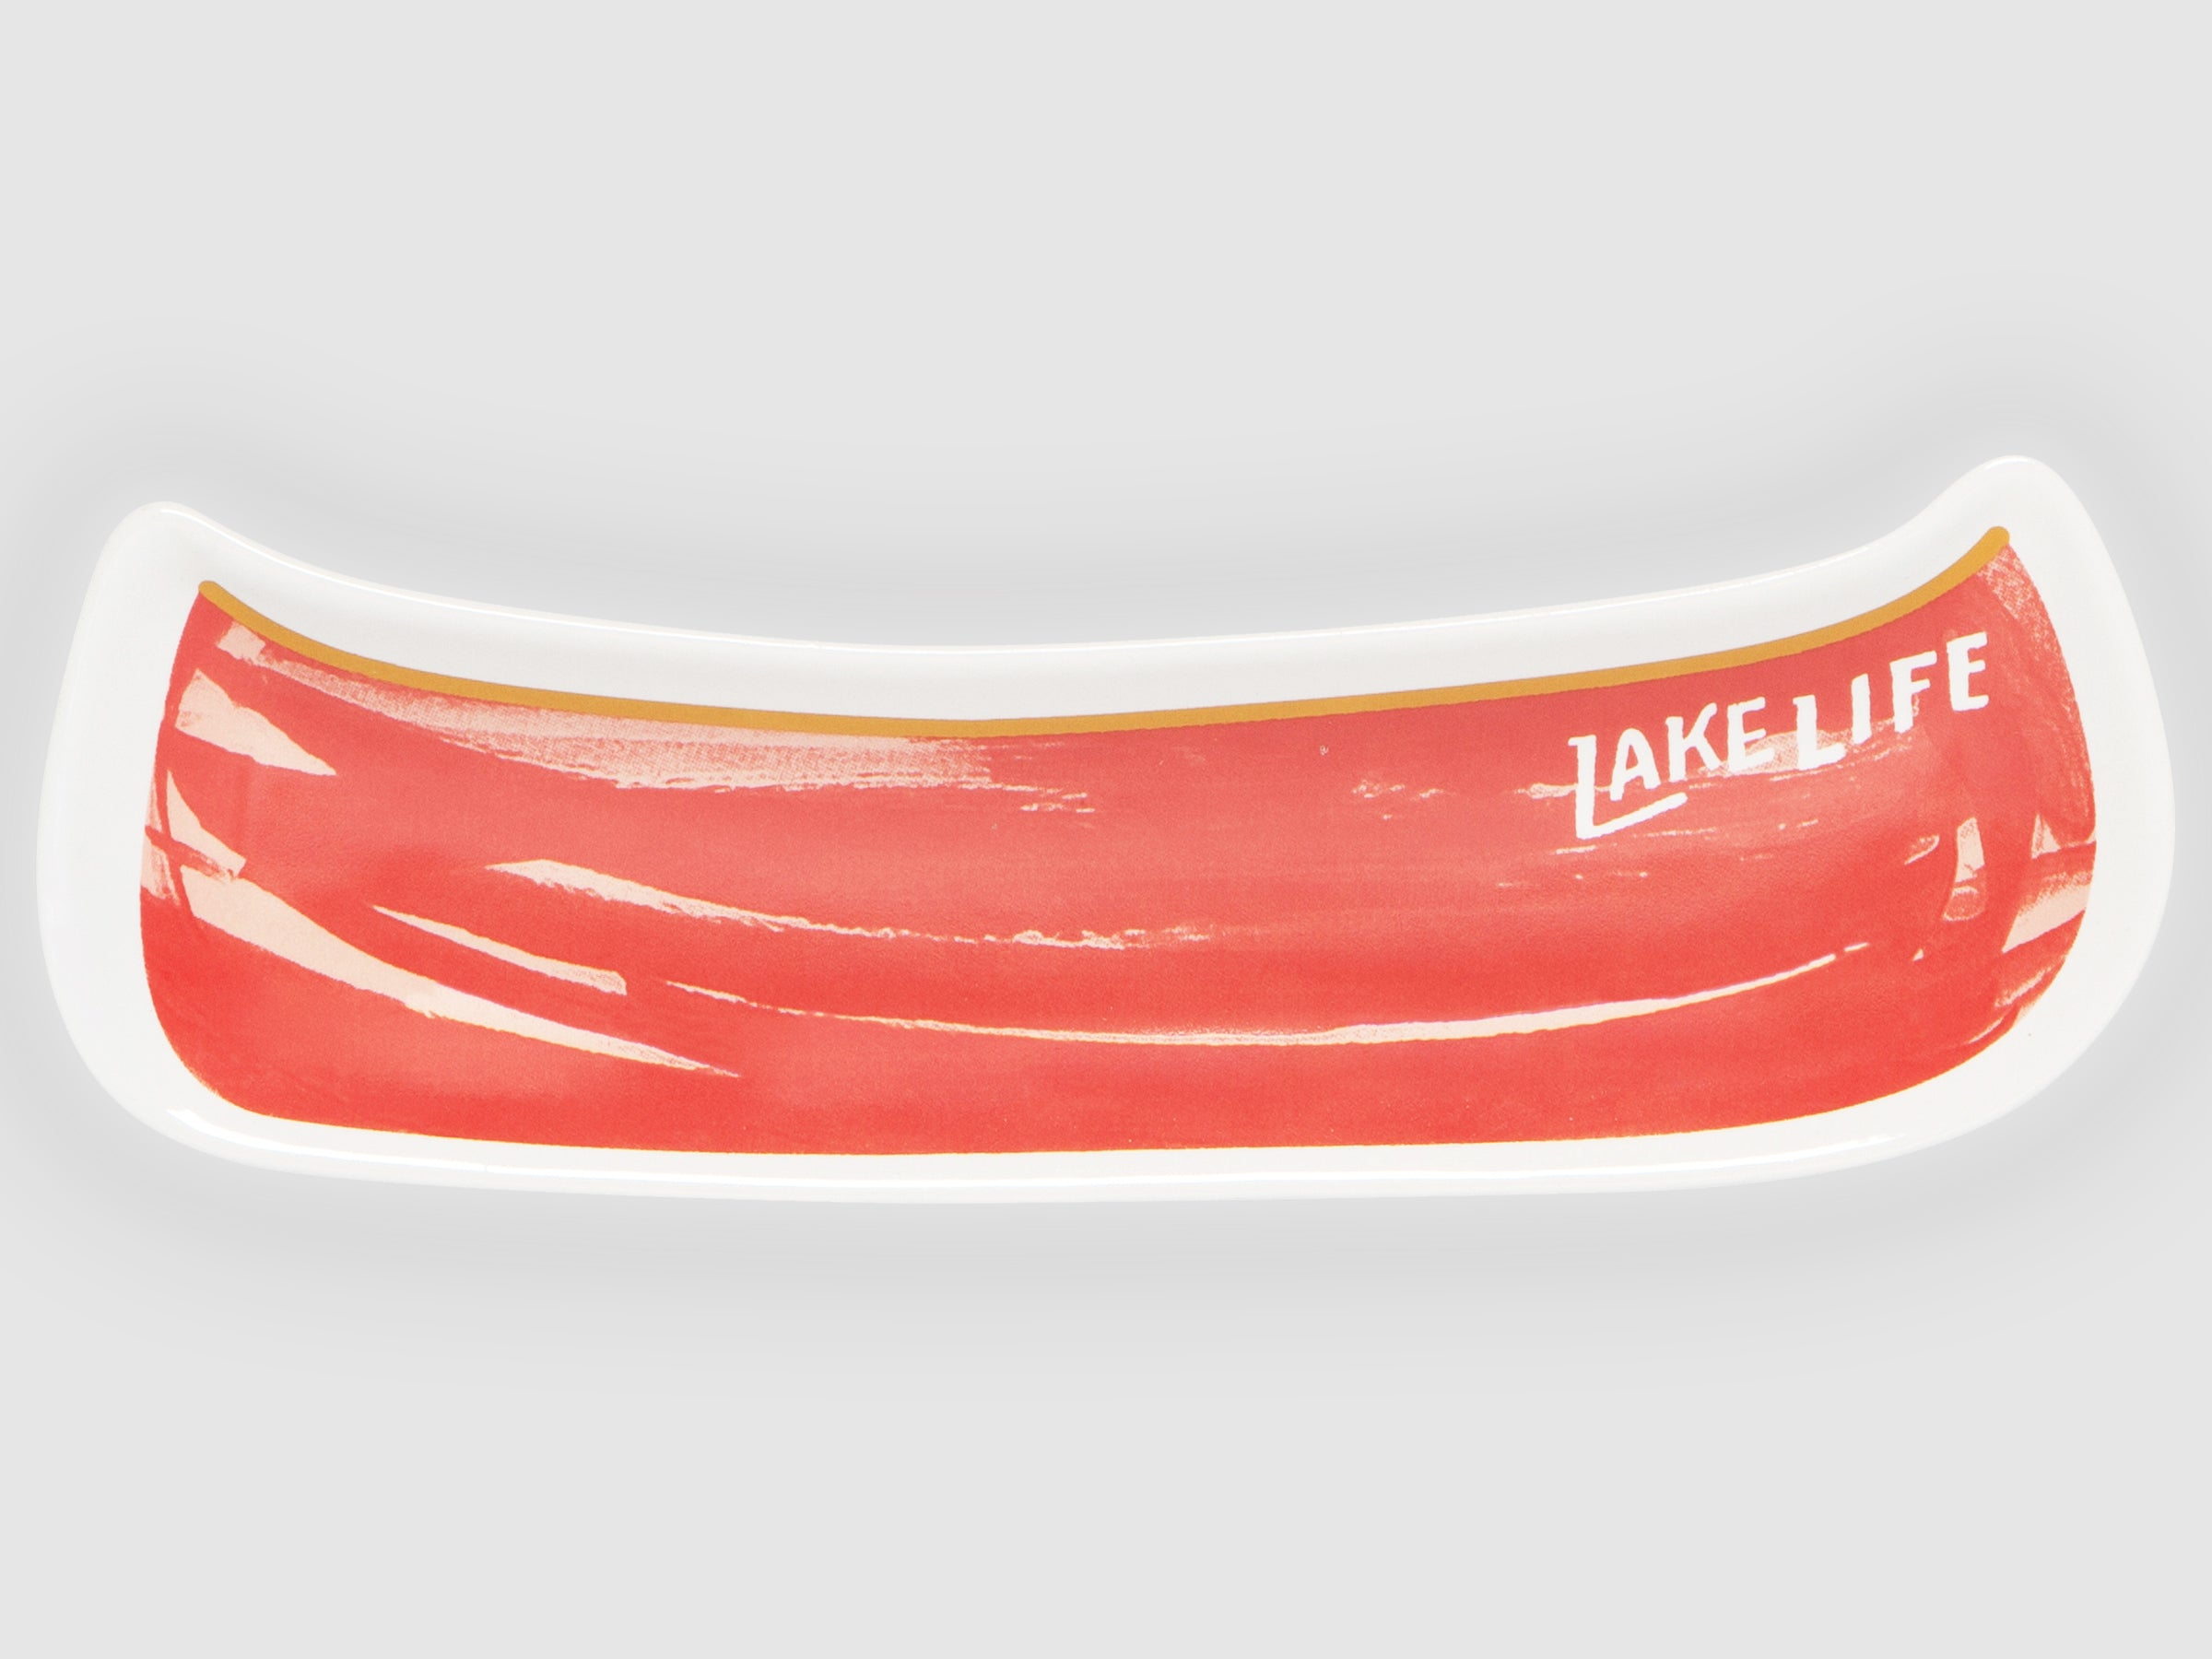 Lake Life Canoe Shaped Dish